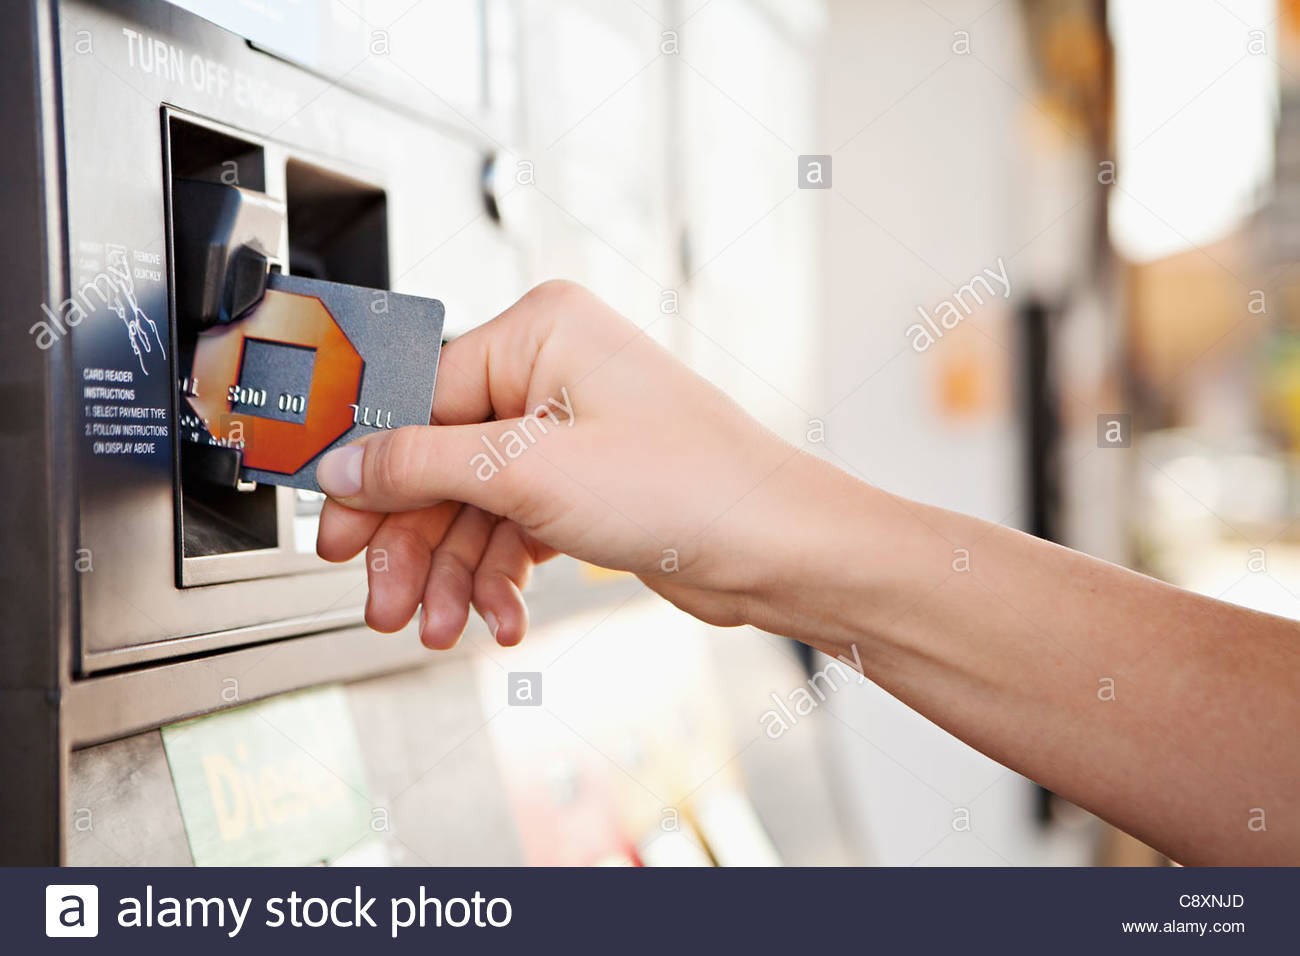 USA, California, Lawndale, Female hand inserting card into tam - Stock Image